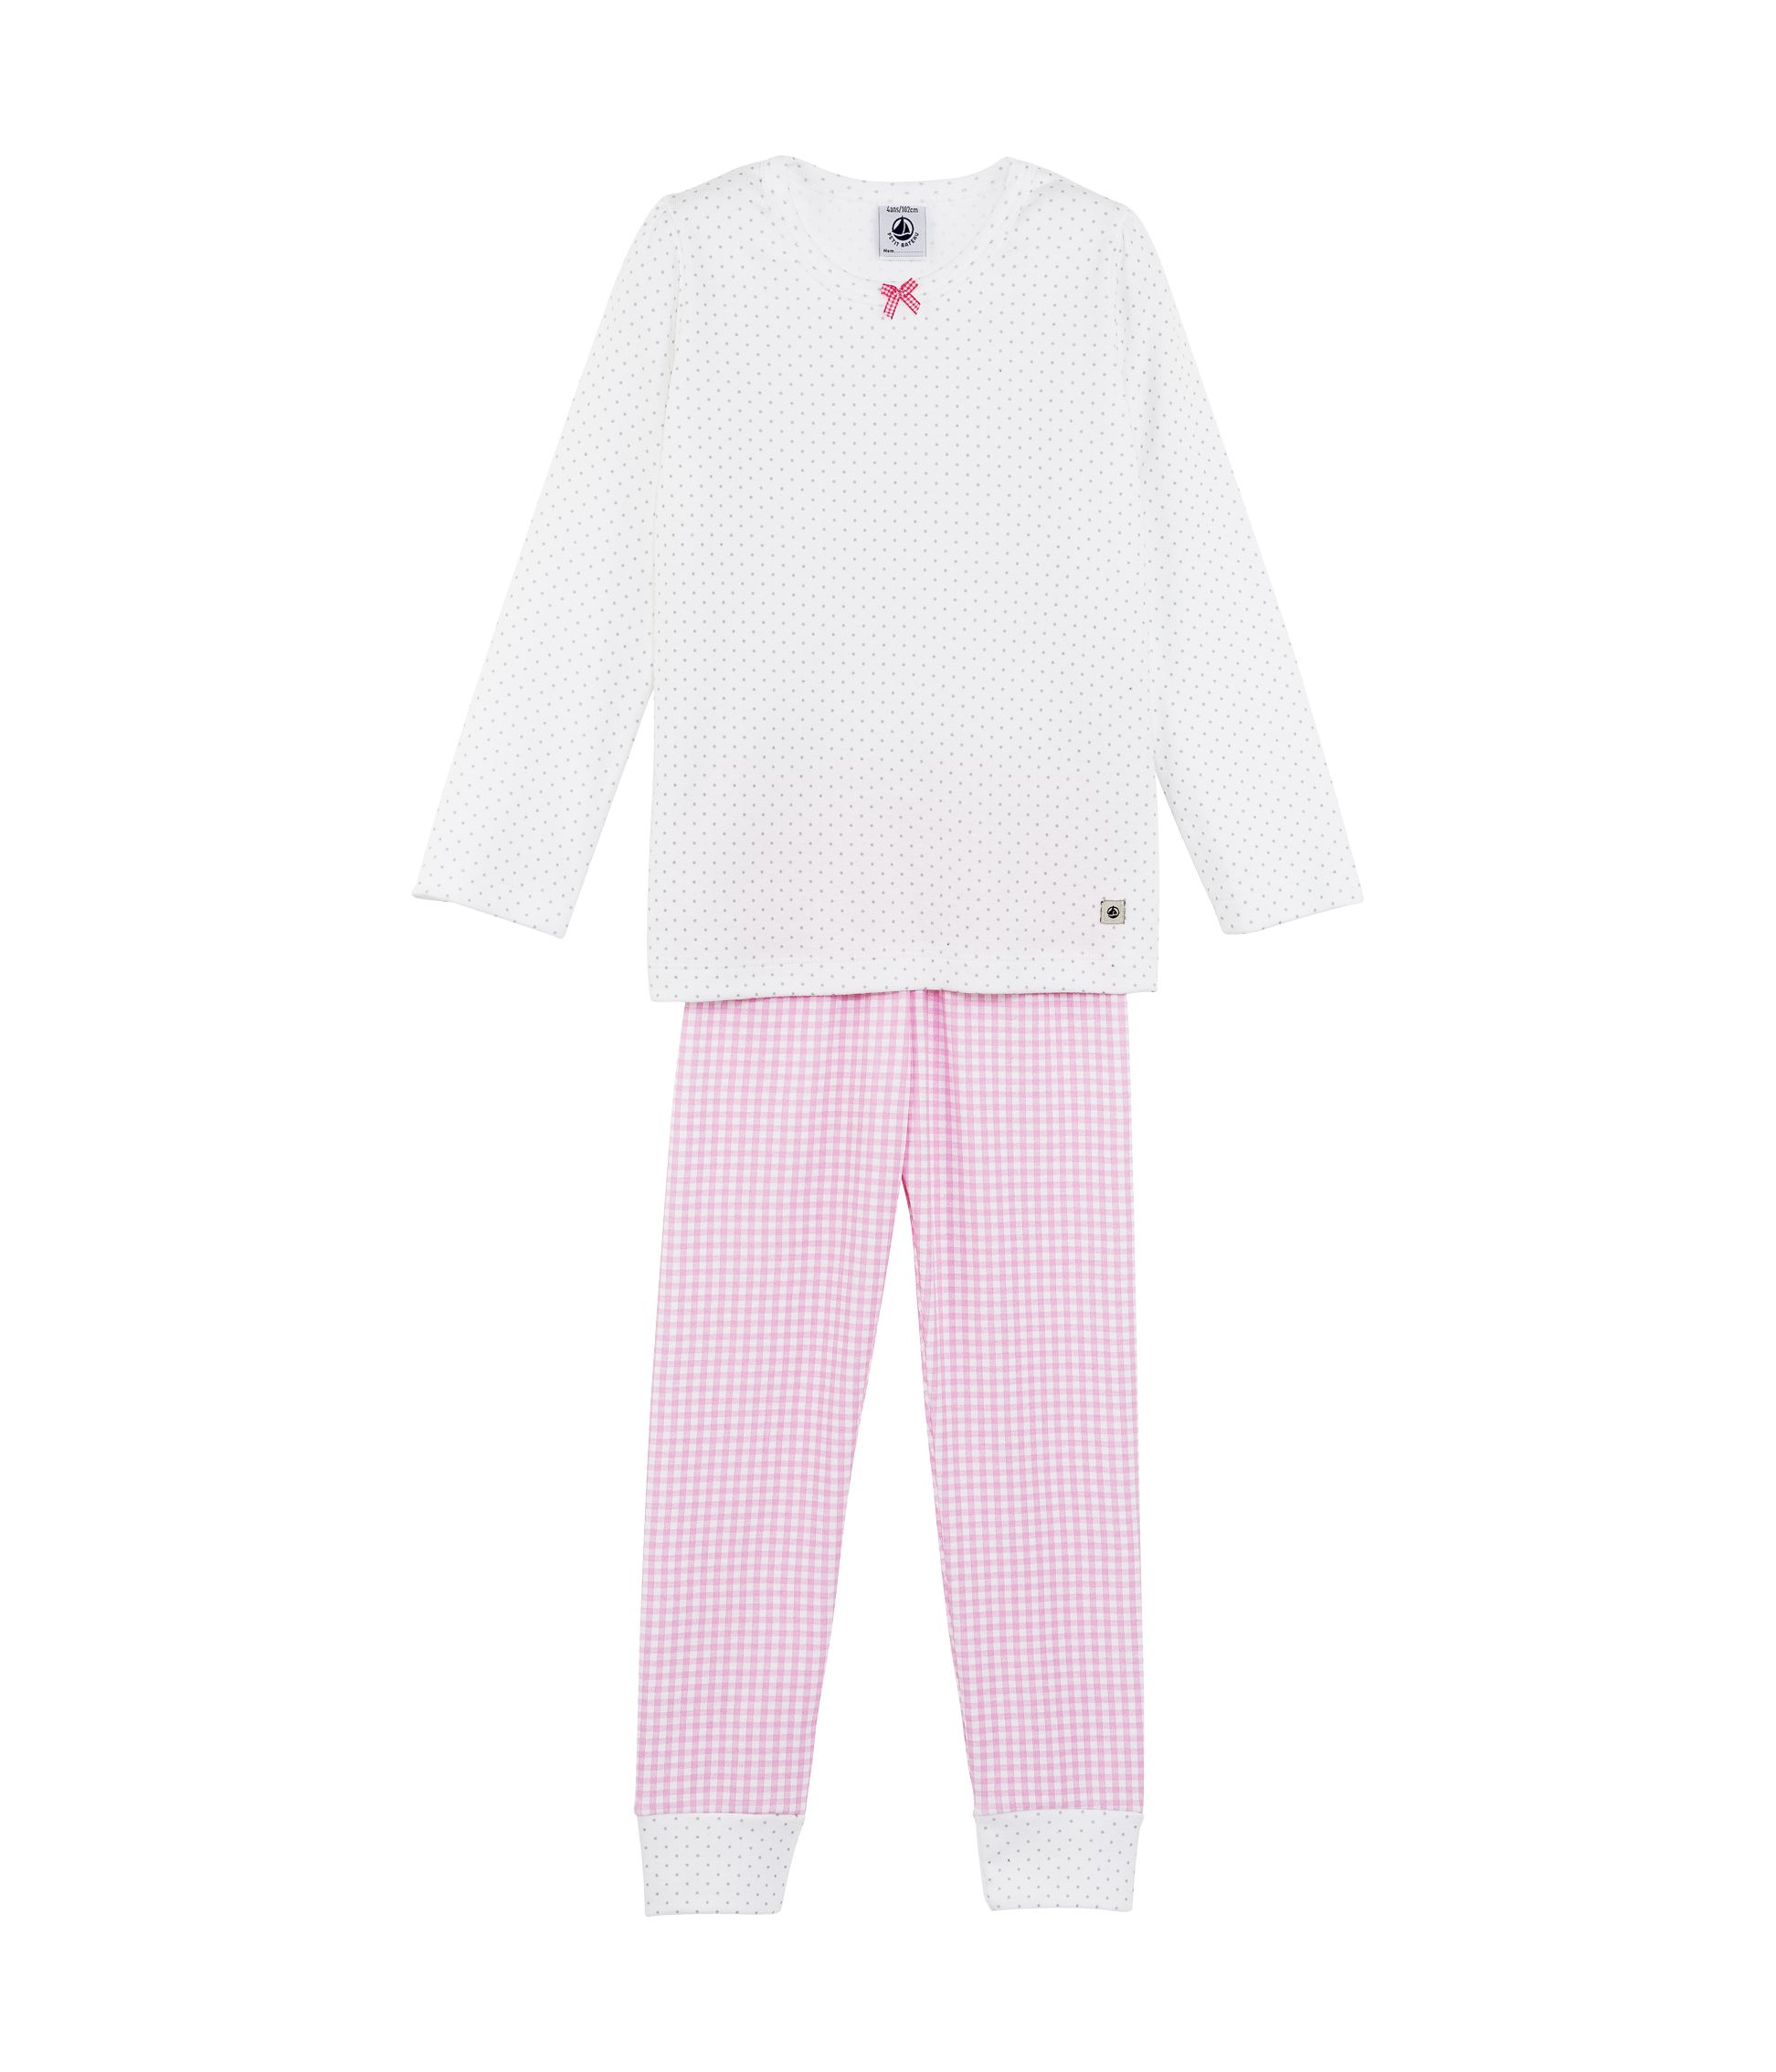 Girls cotton mix & match print pyjamas